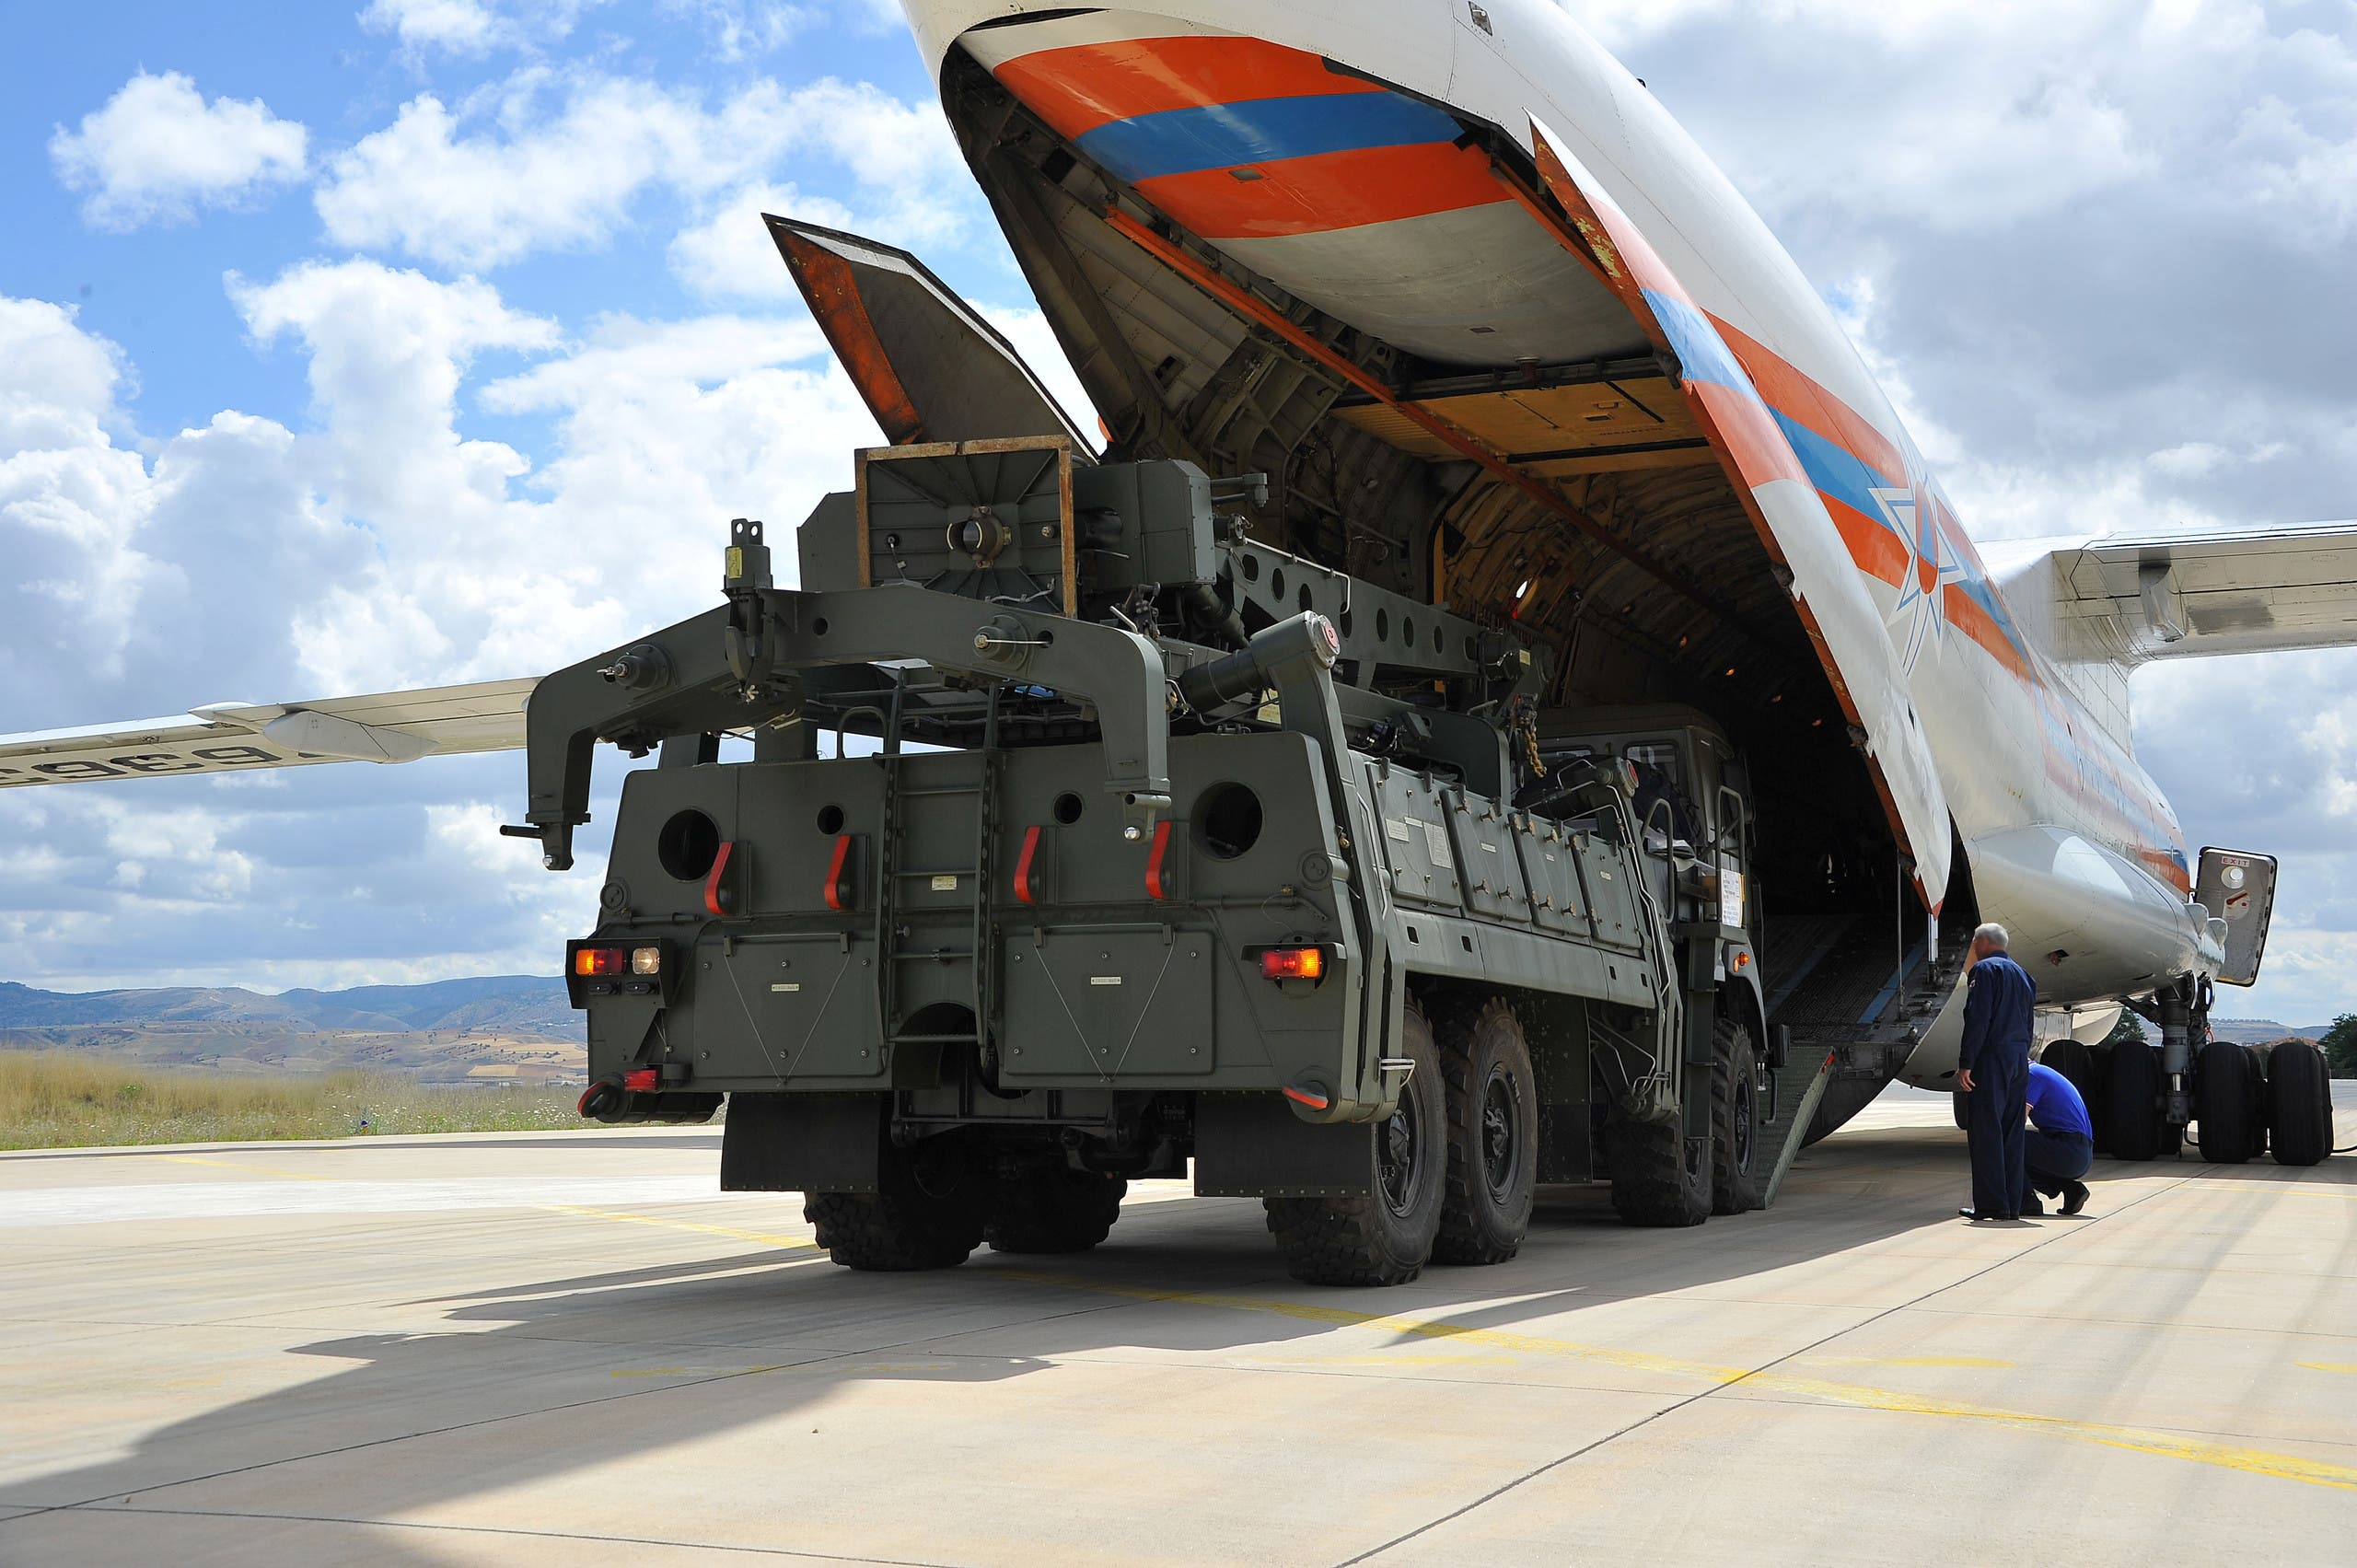 First parts of a Russian S-400 missile defense system are seen after unloaded from a Russian plane at Murted Airport, known as Akinci Air Base, near Ankara, Turkey, July 12, 2019. (Reuters)